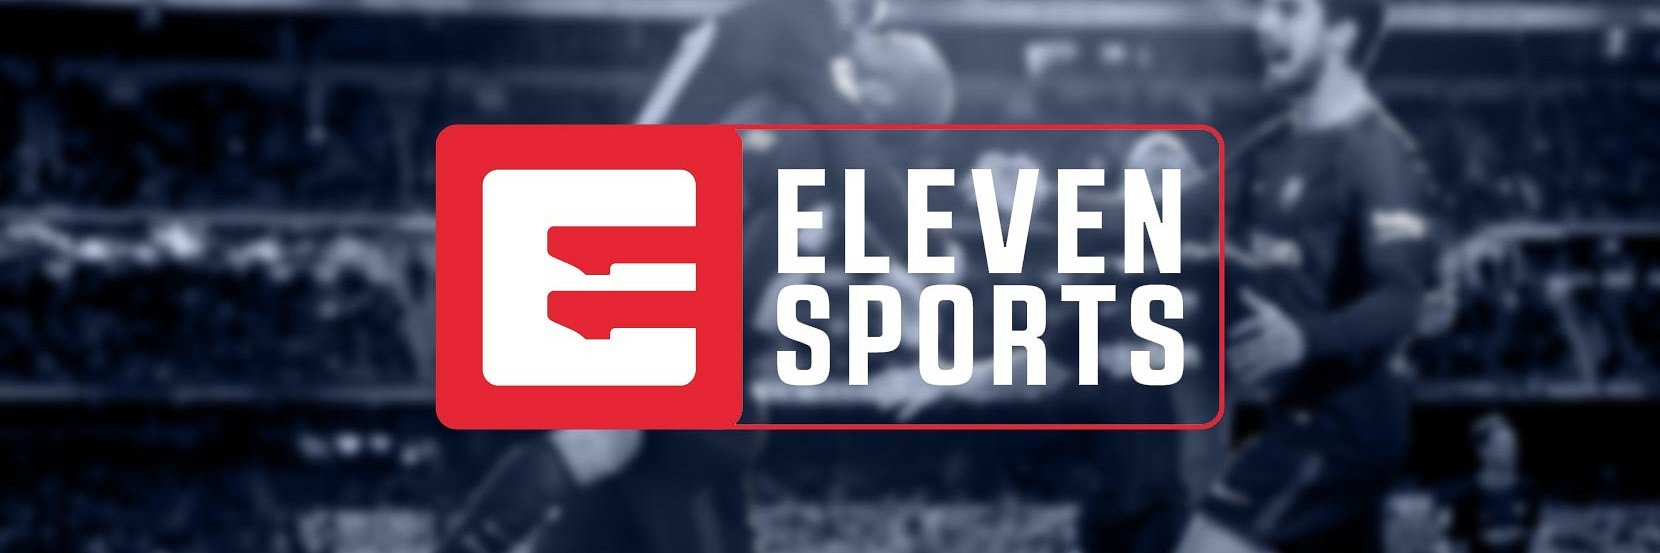 Eleven Sports traz taça da Champions League a Portugal